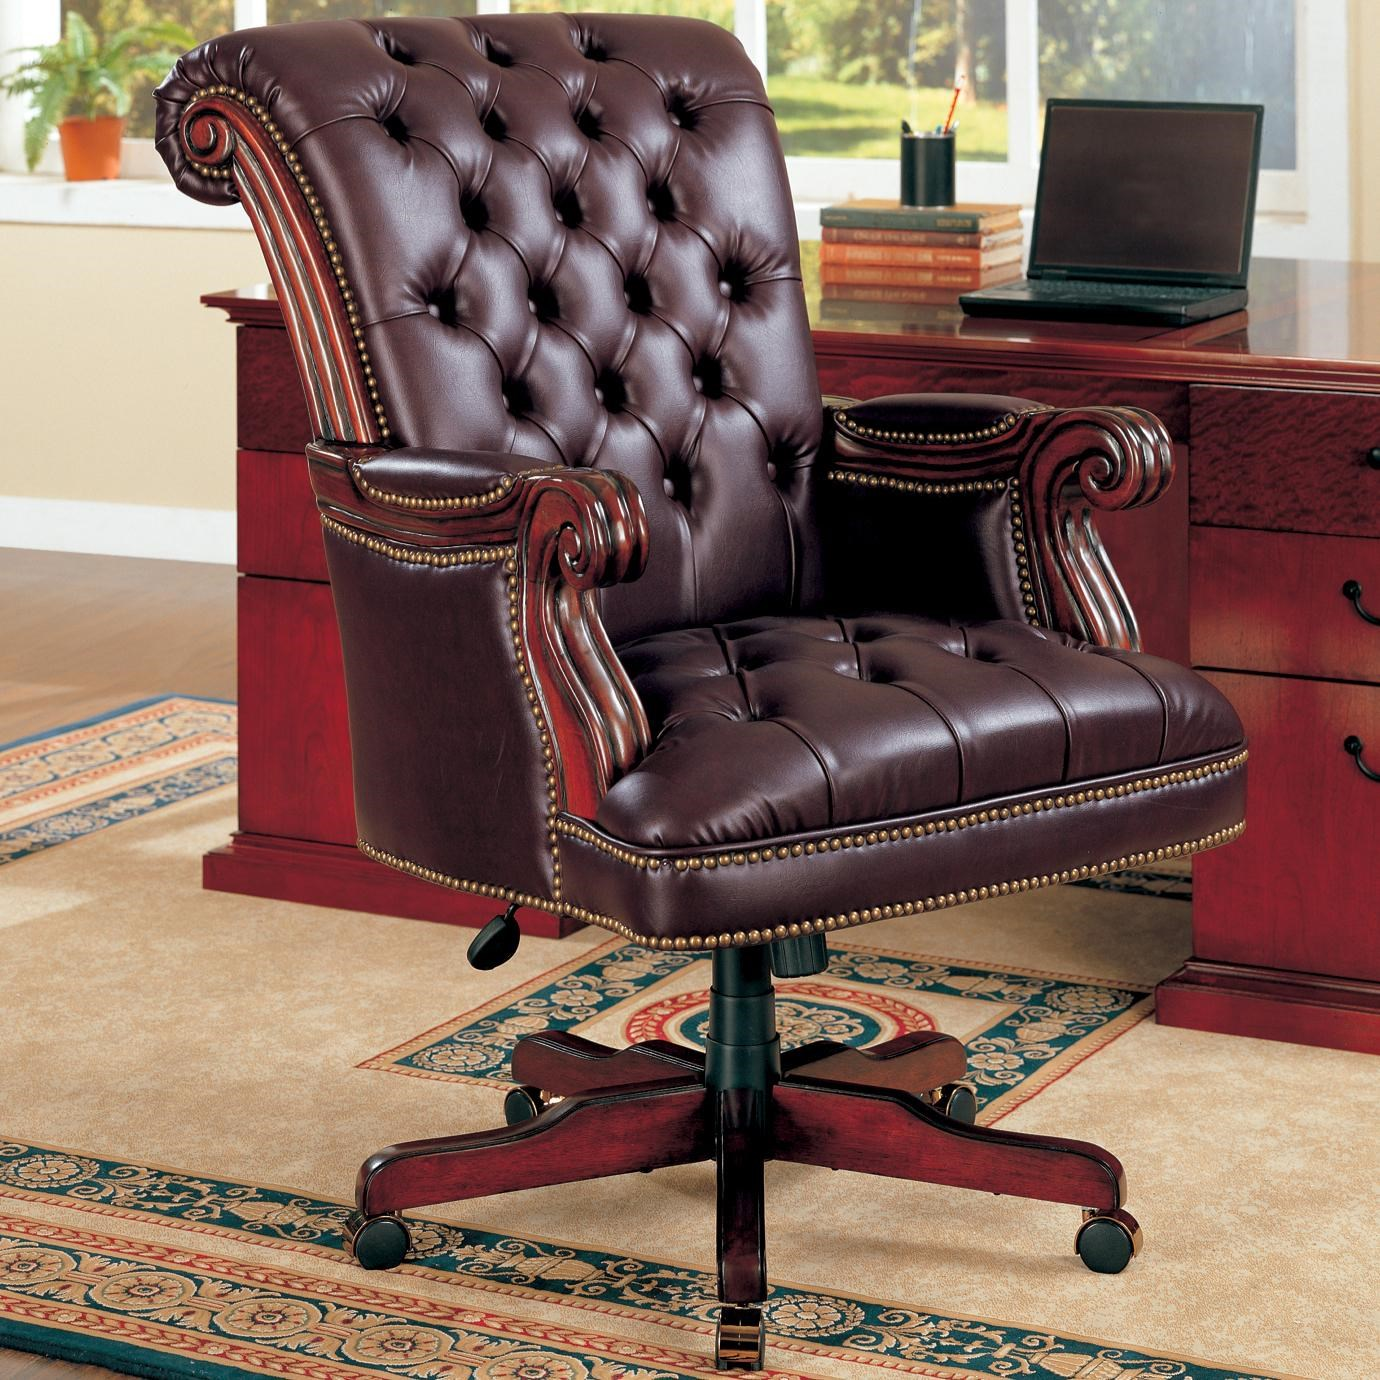 colored office chairs. Coaster Office ChairsOffice Chair Colored Chairs E